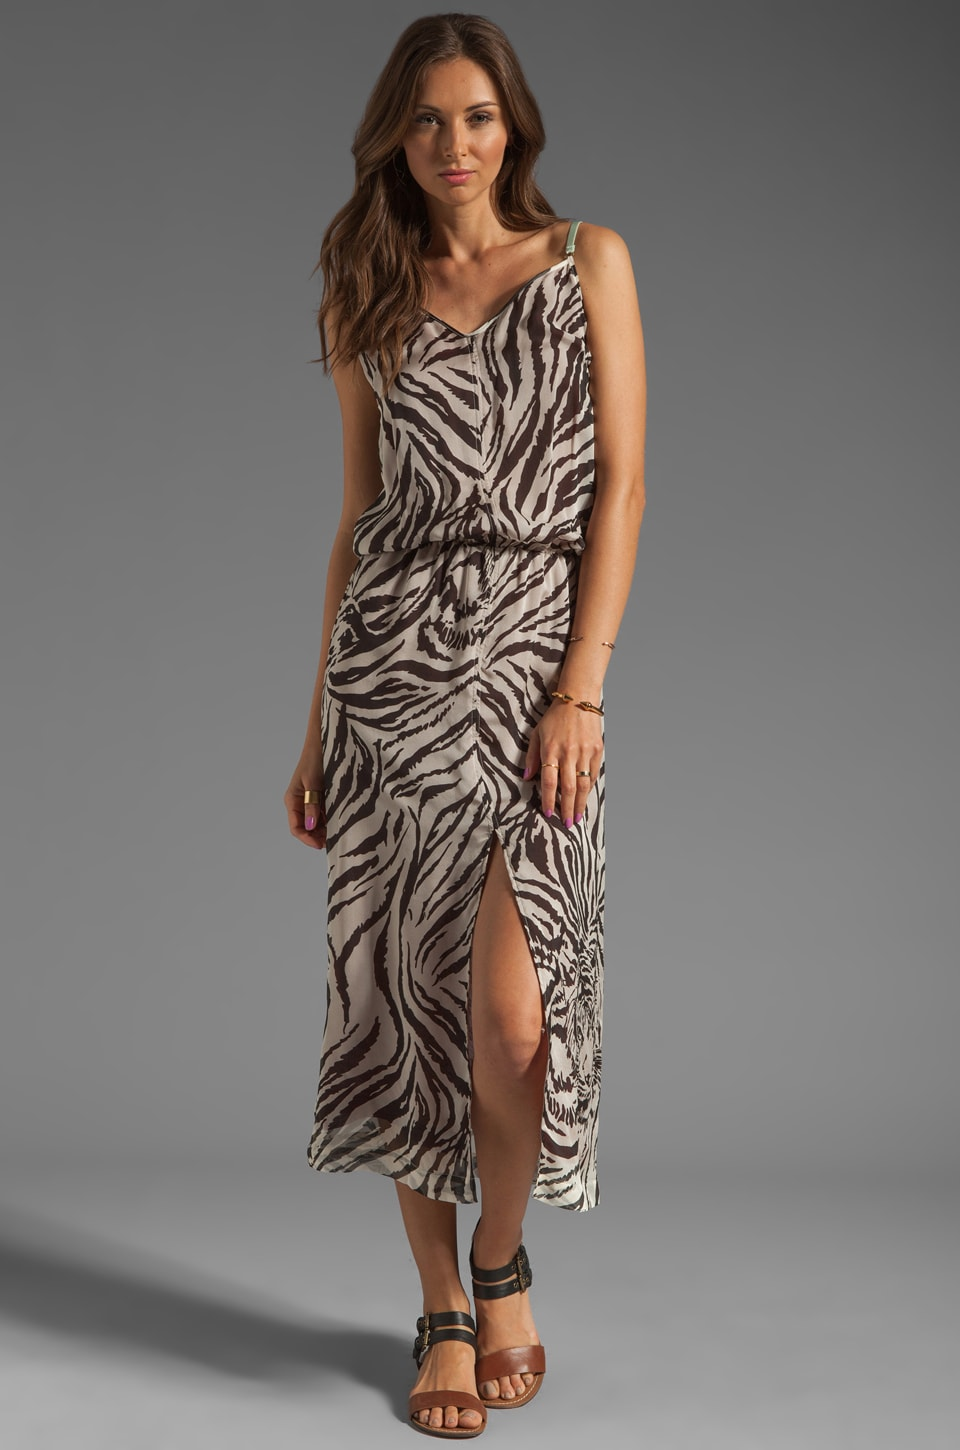 ROSEanna Burning Maxi Dress in Tiger